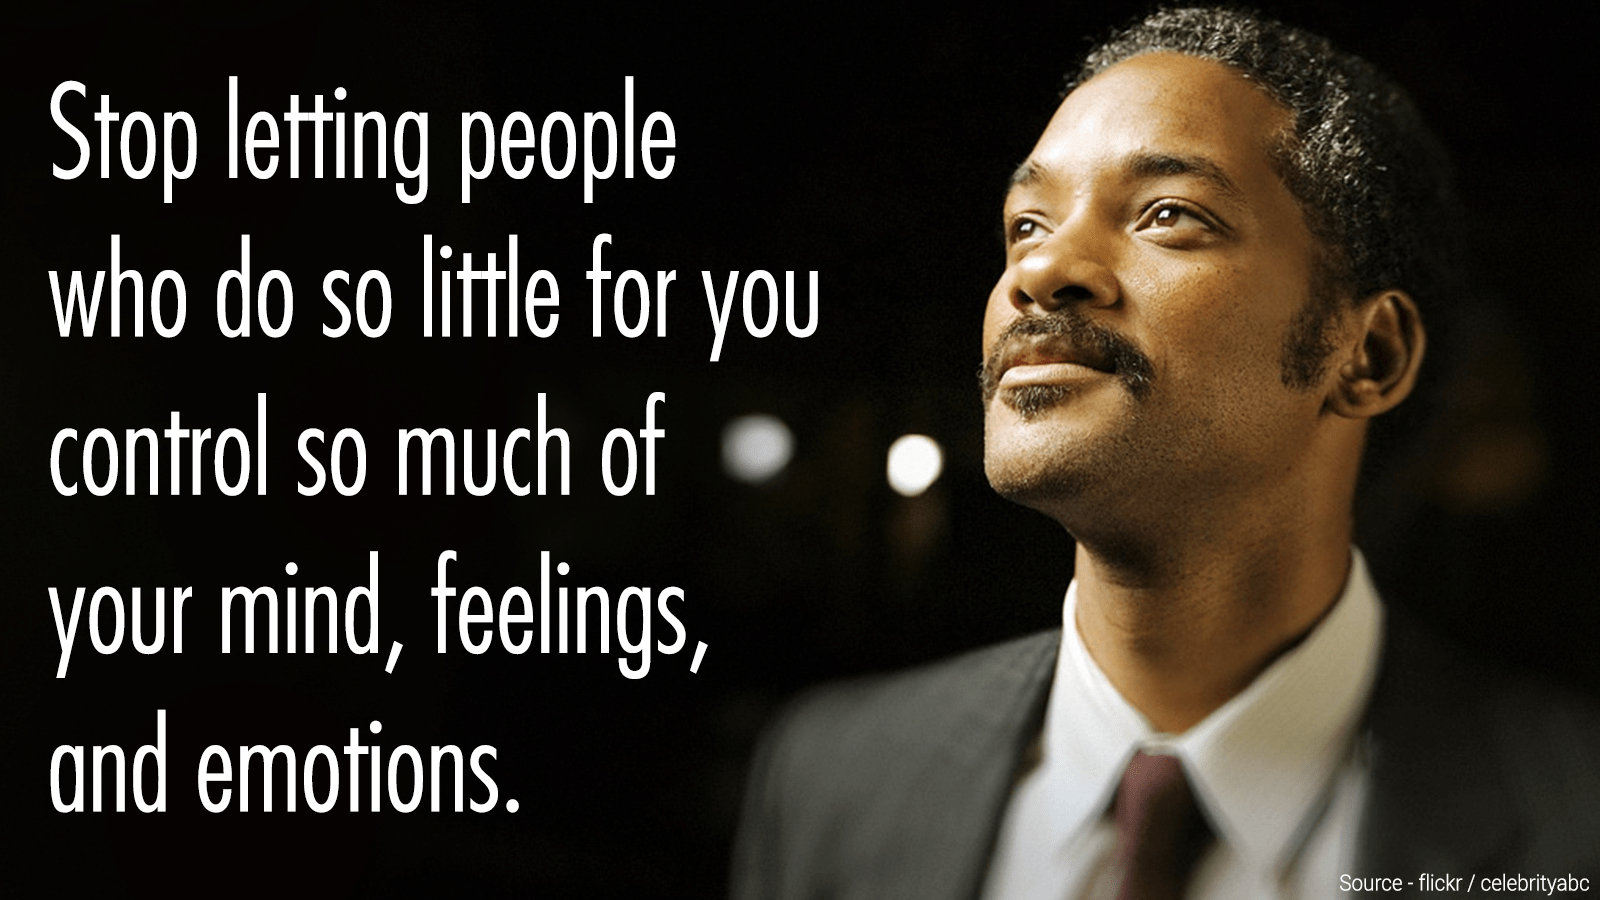 20 life thoughts from famous people that will change your life